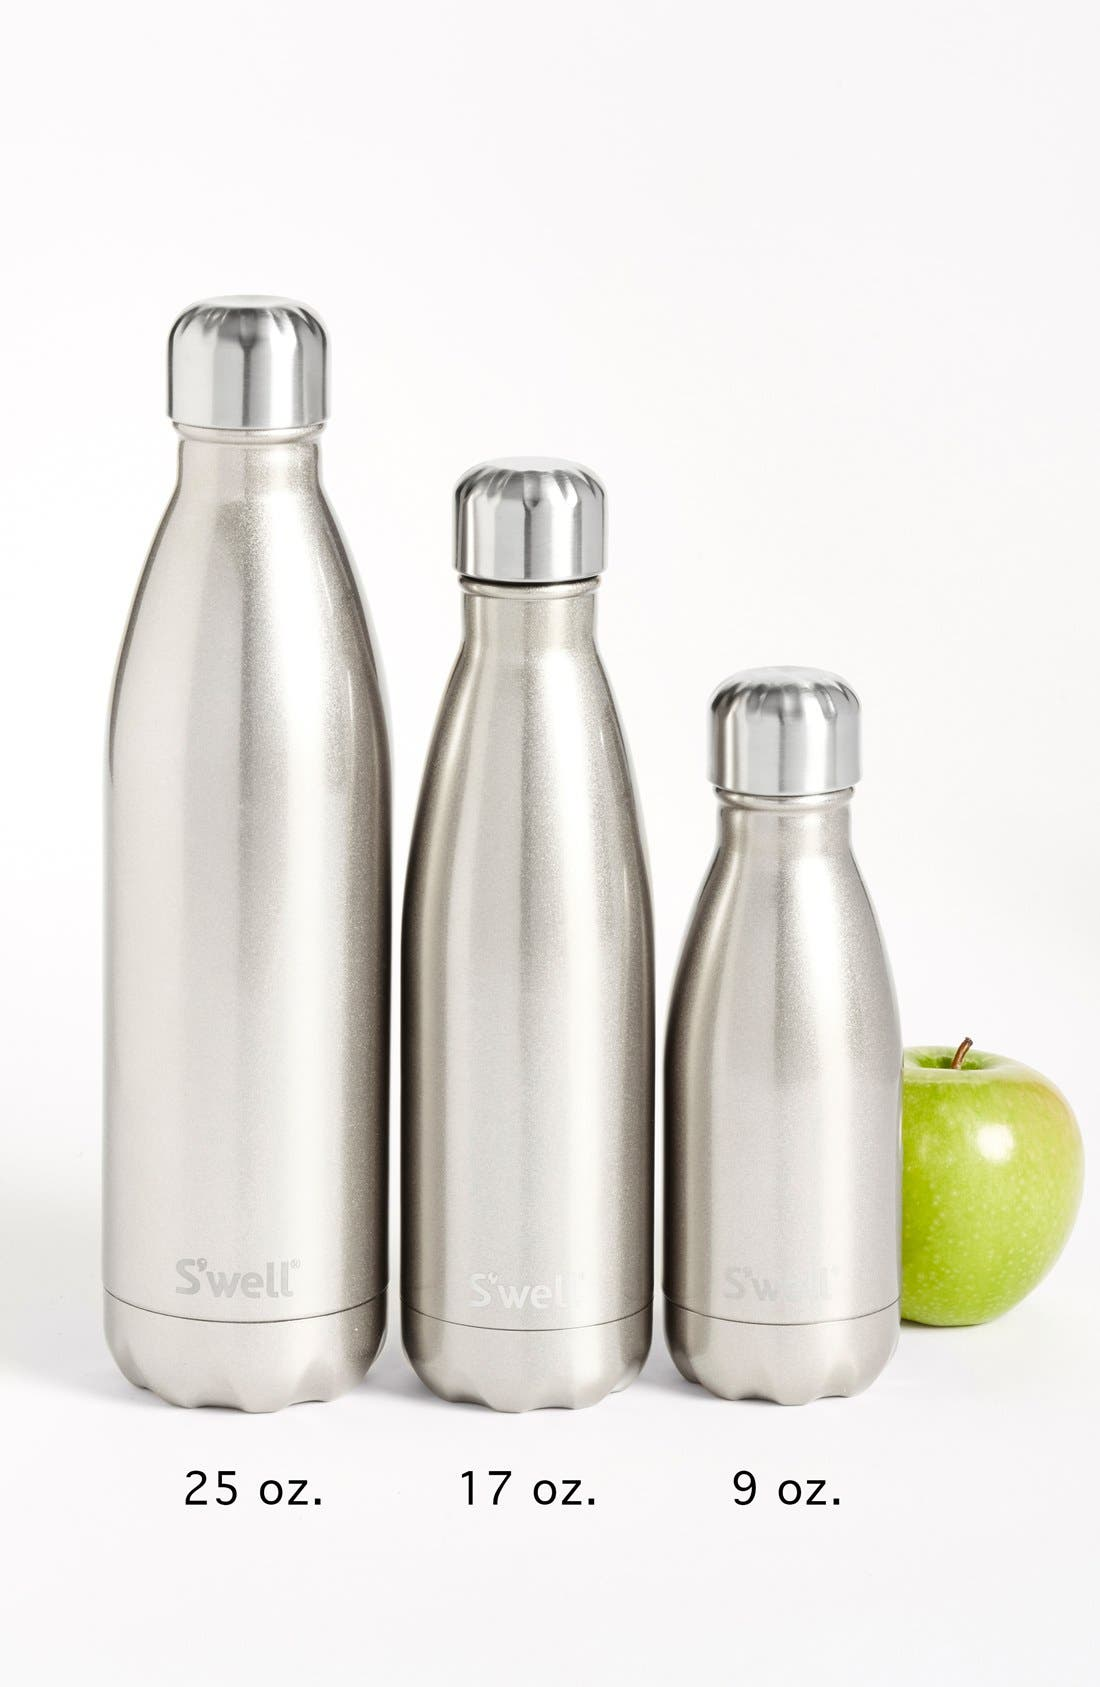 'Silver Lining' Stainless Steel Water Bottle,                             Alternate thumbnail 7, color,                             SILVER